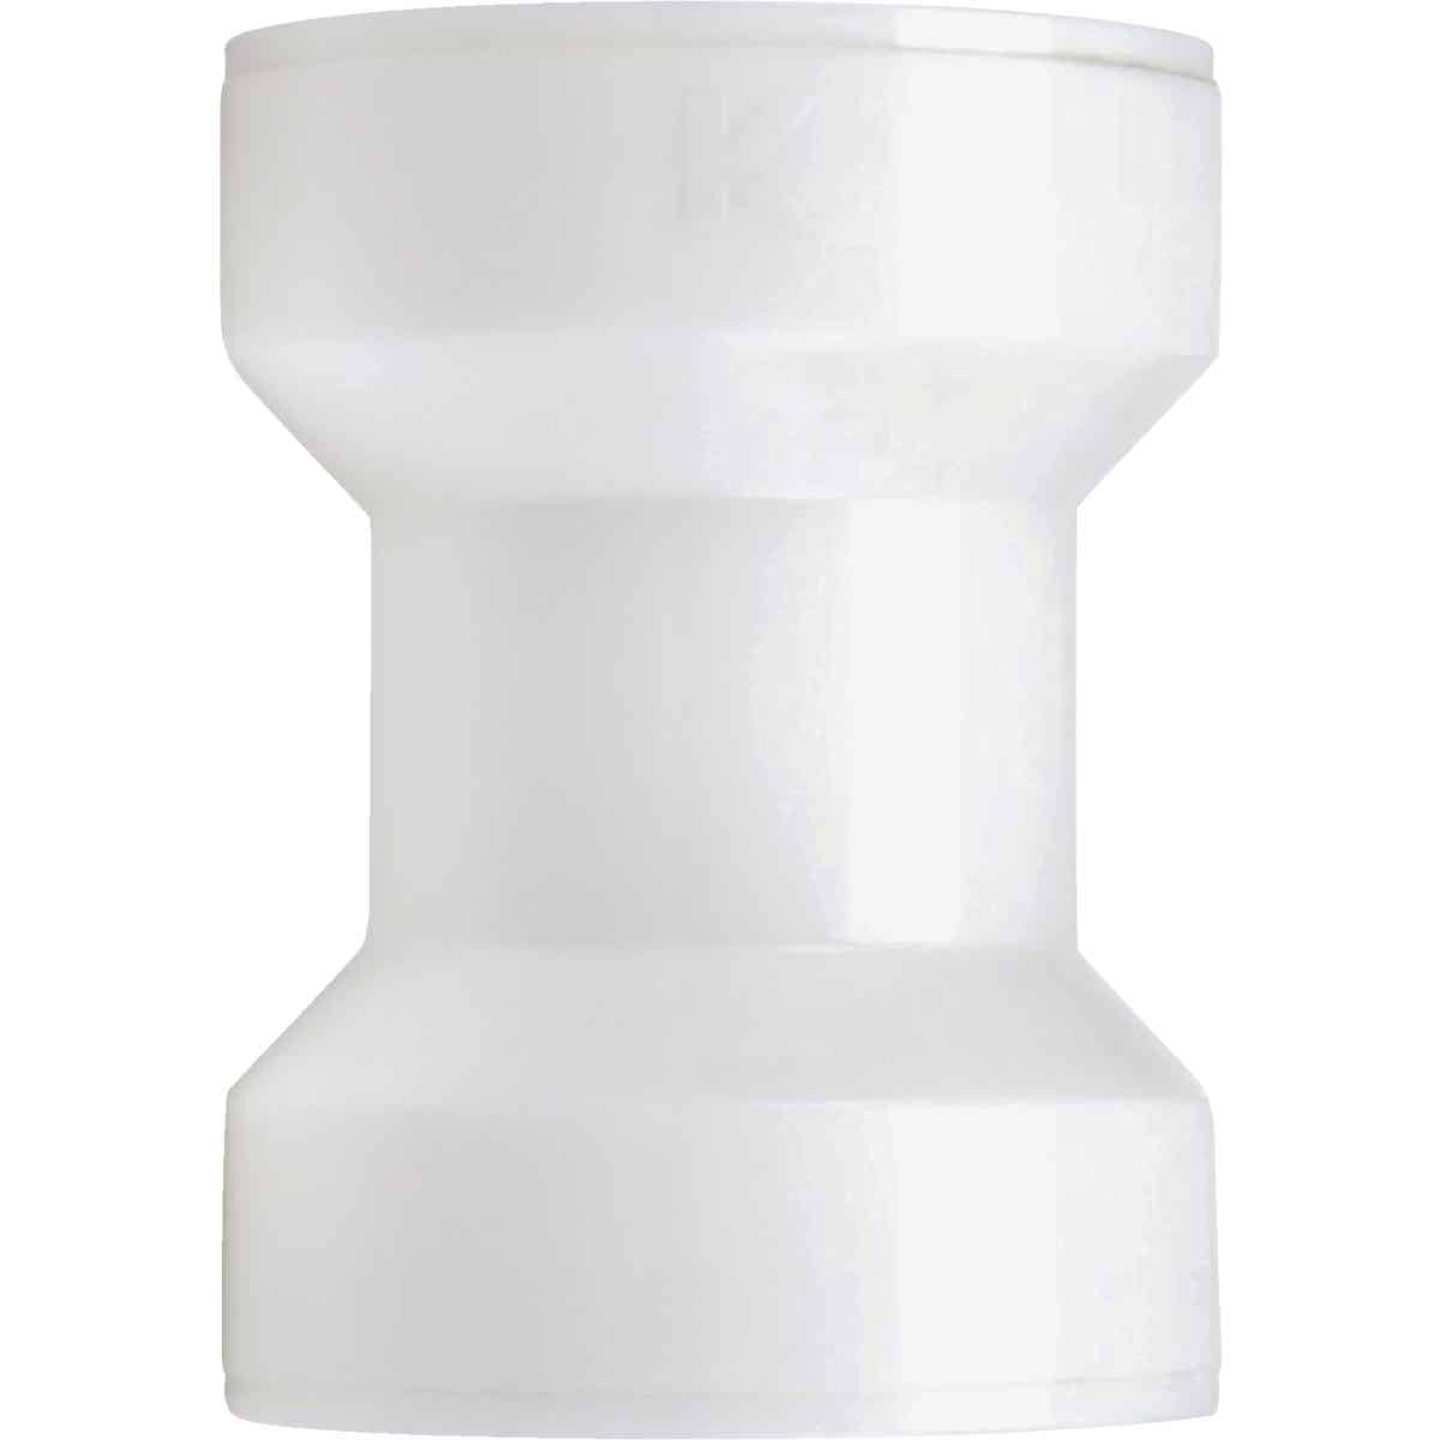 Keeney Insta-Plumb 1-1/2 In. White Plastic Straight Coupling Image 1